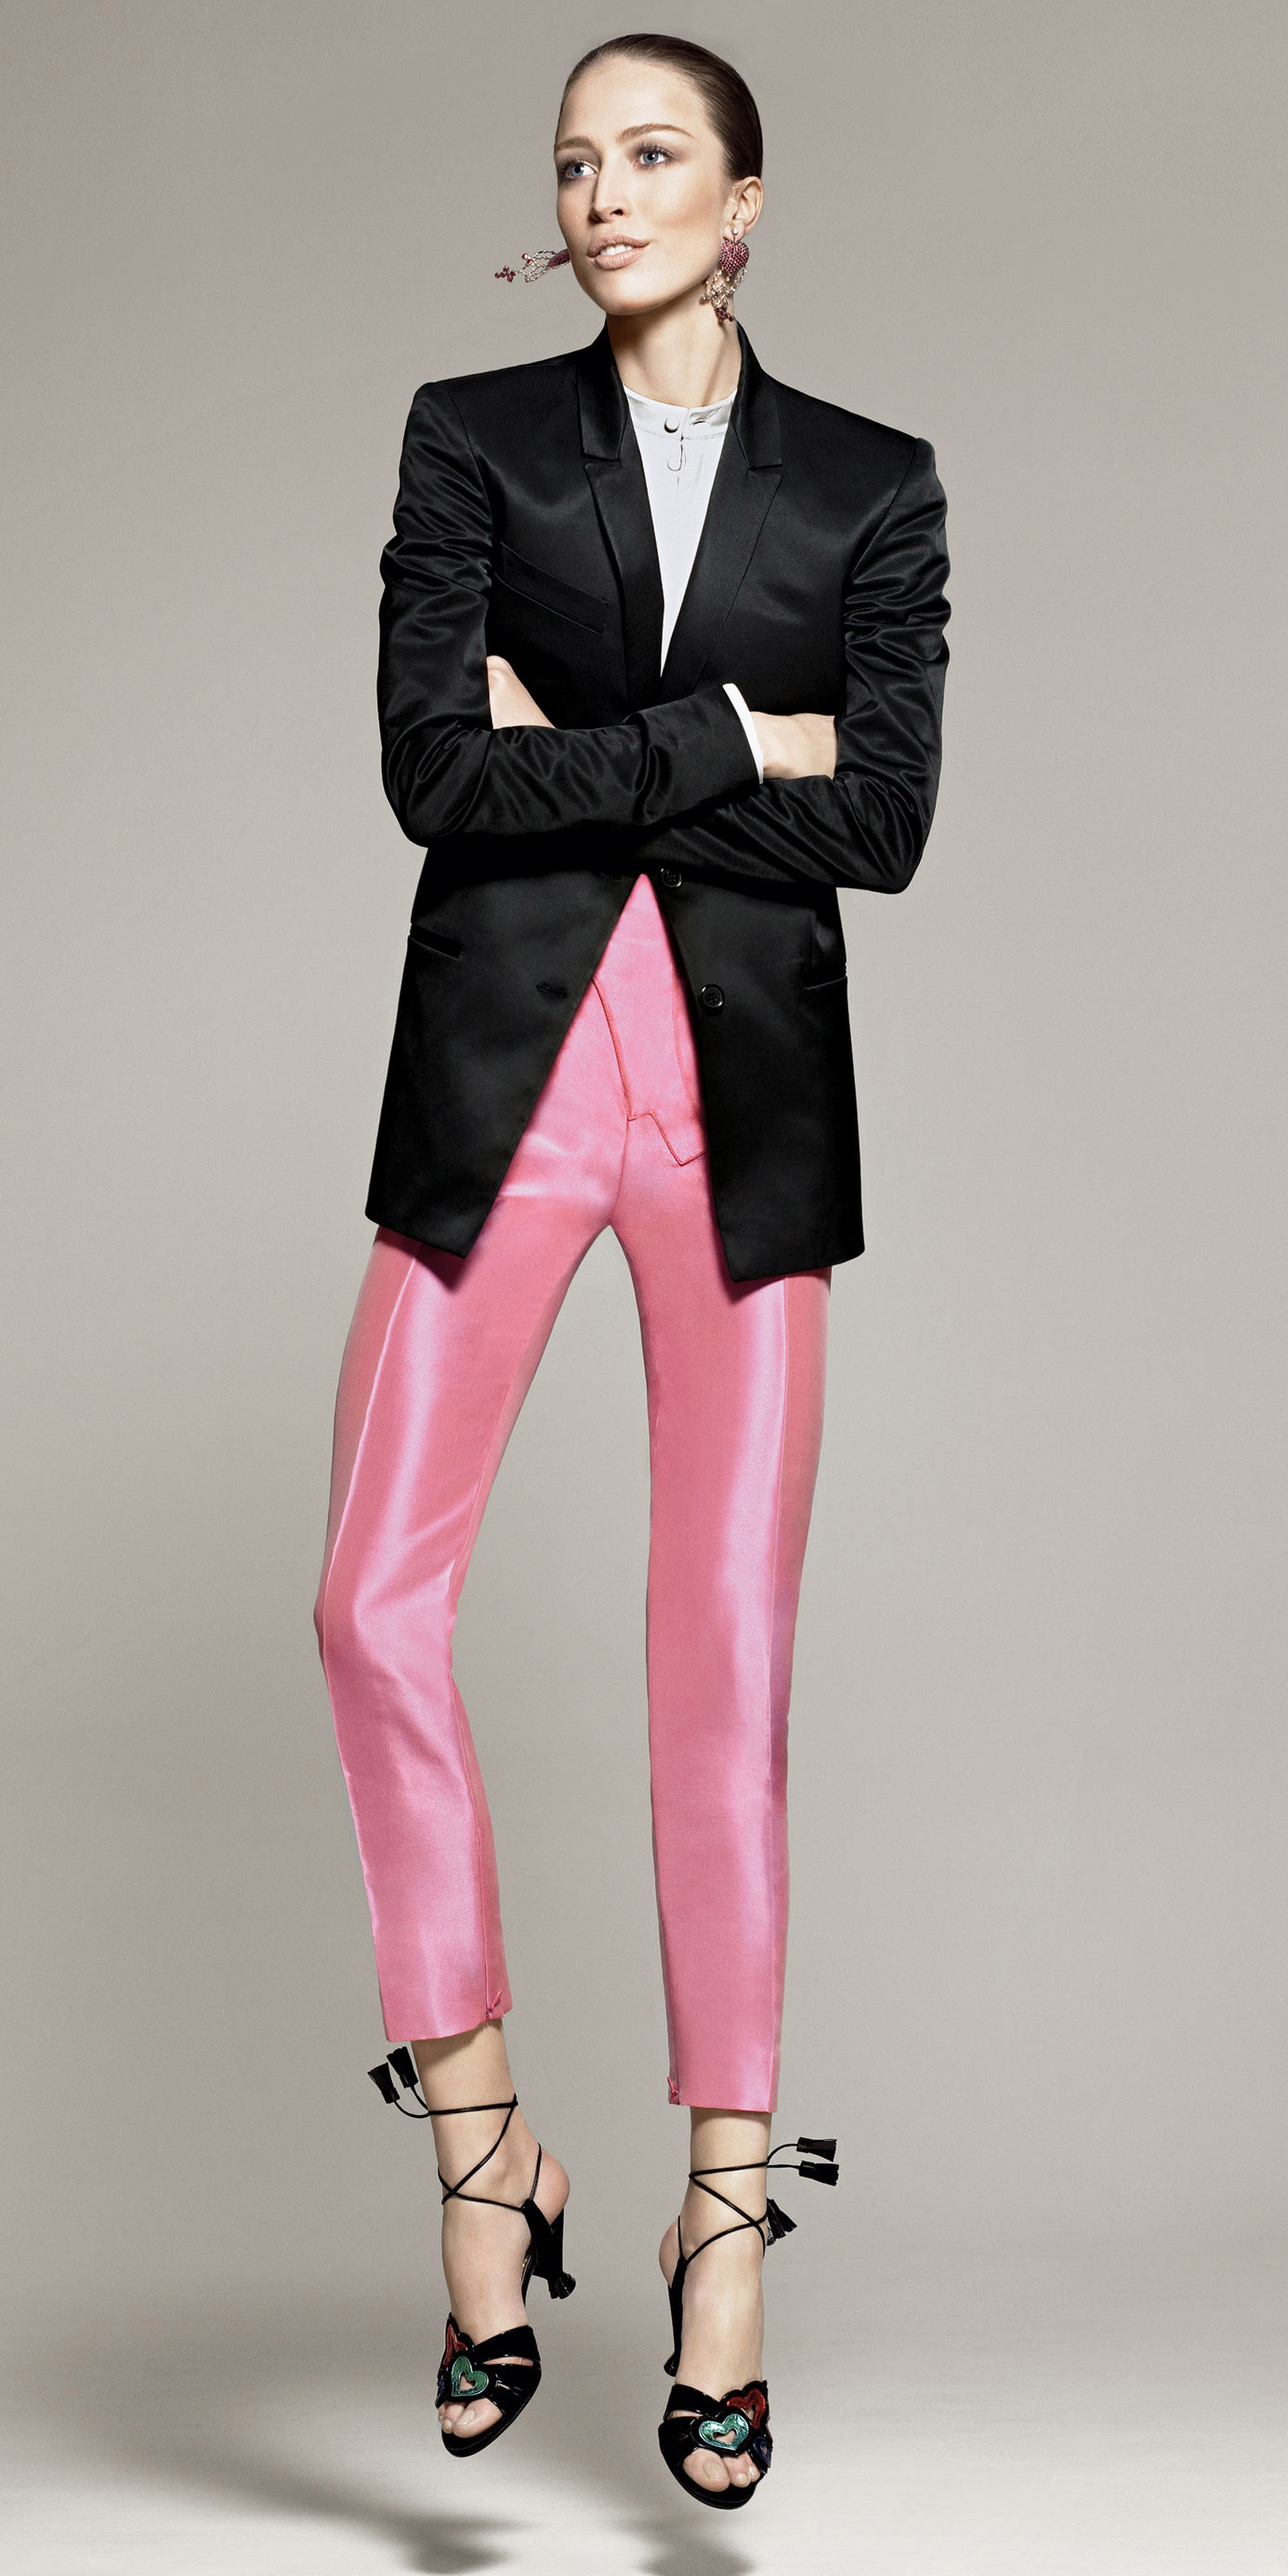 what-to-wear-for-a-fall-wedding-guest-outfit-pink-light-slim-pants-black-jacket-blazer-hairr-bun-earrings-black-shoe-sandalh-dinner.jpg